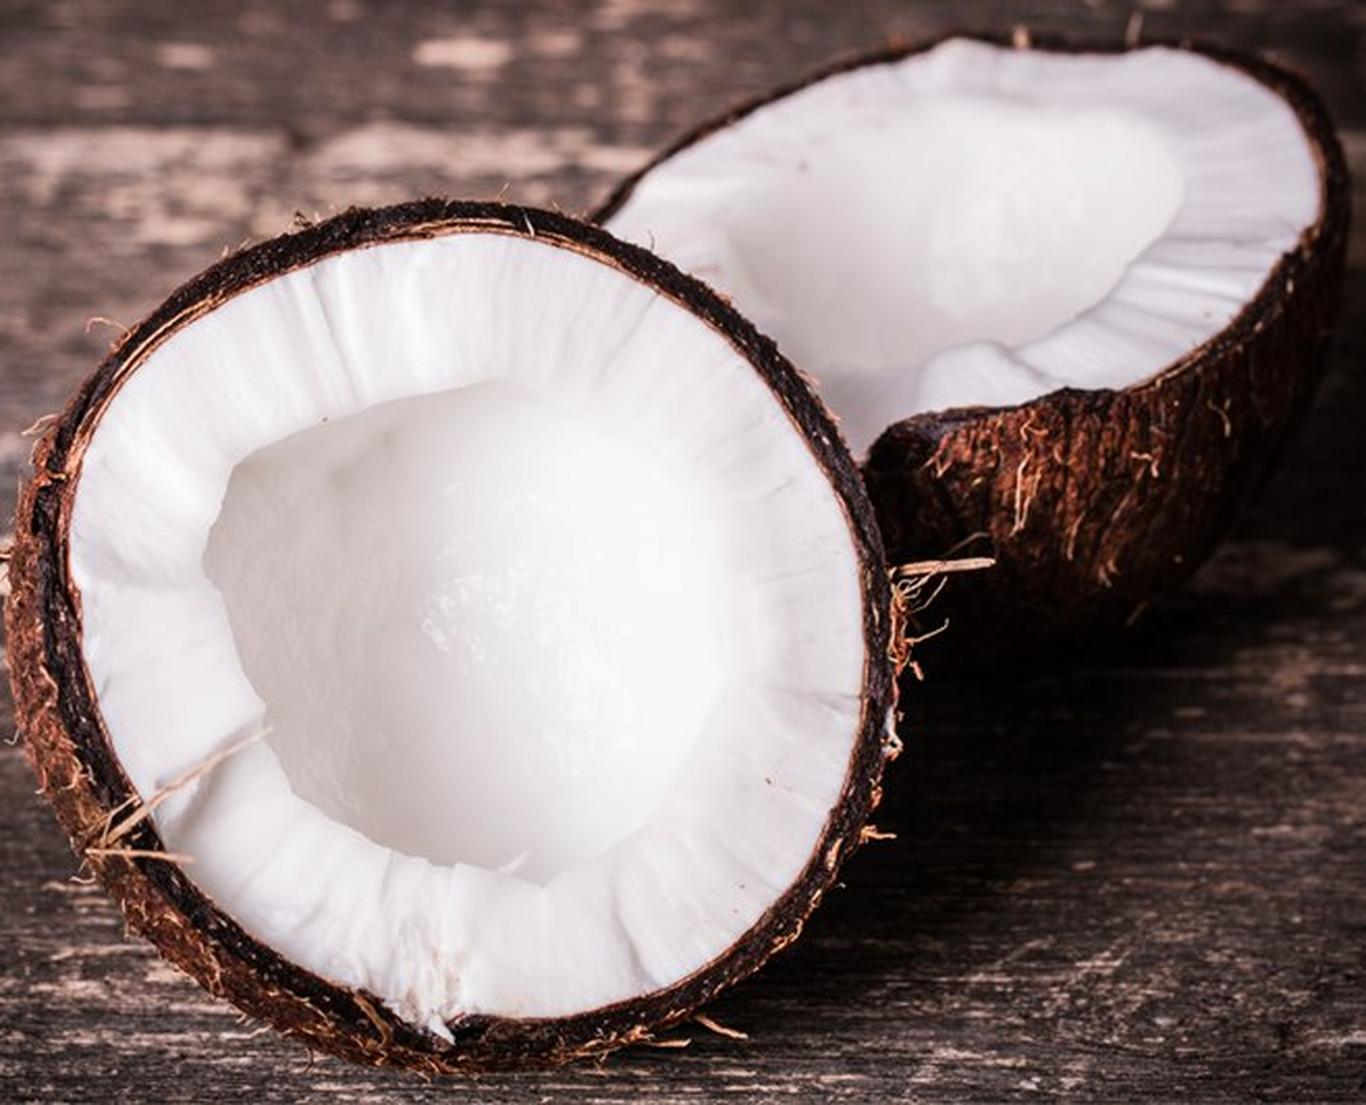 Coconut oil has antimicrobial properties that can help prevent hair loss.